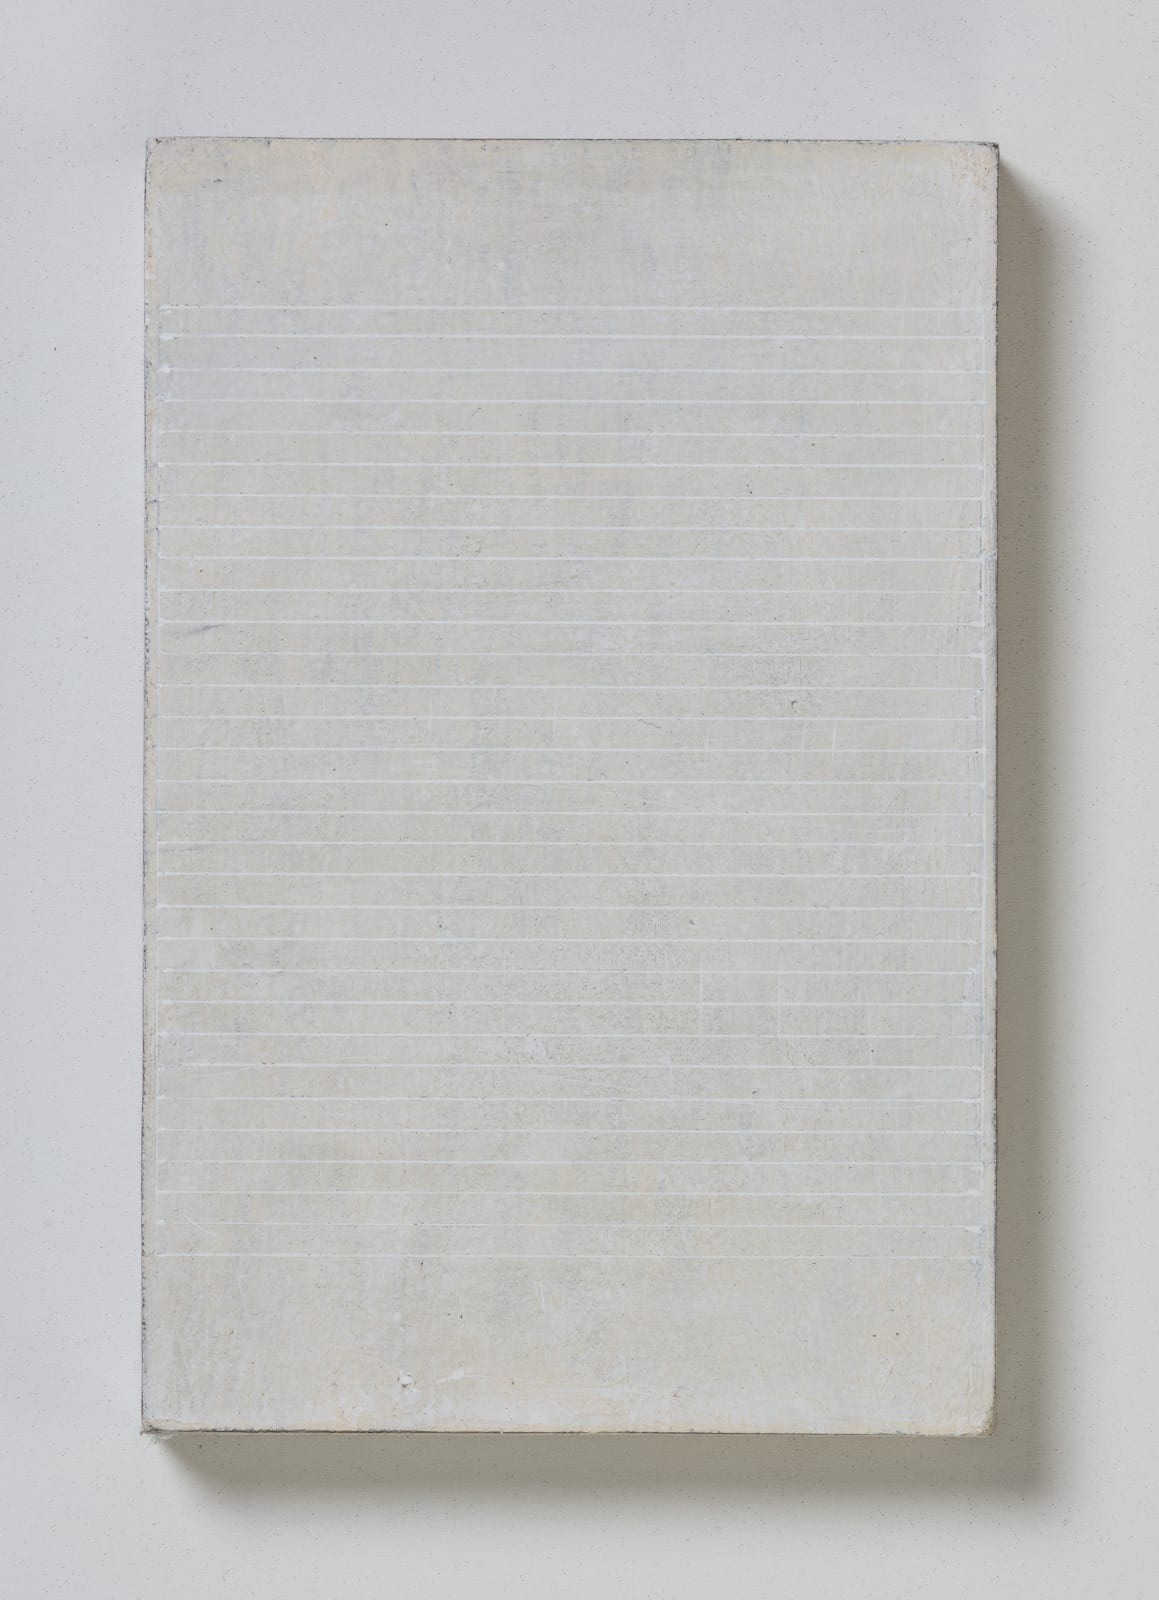 No.4, from flume series, 2020 oil on paper on wood 20.5 x 13.5 cm / 8 x 5.3 in